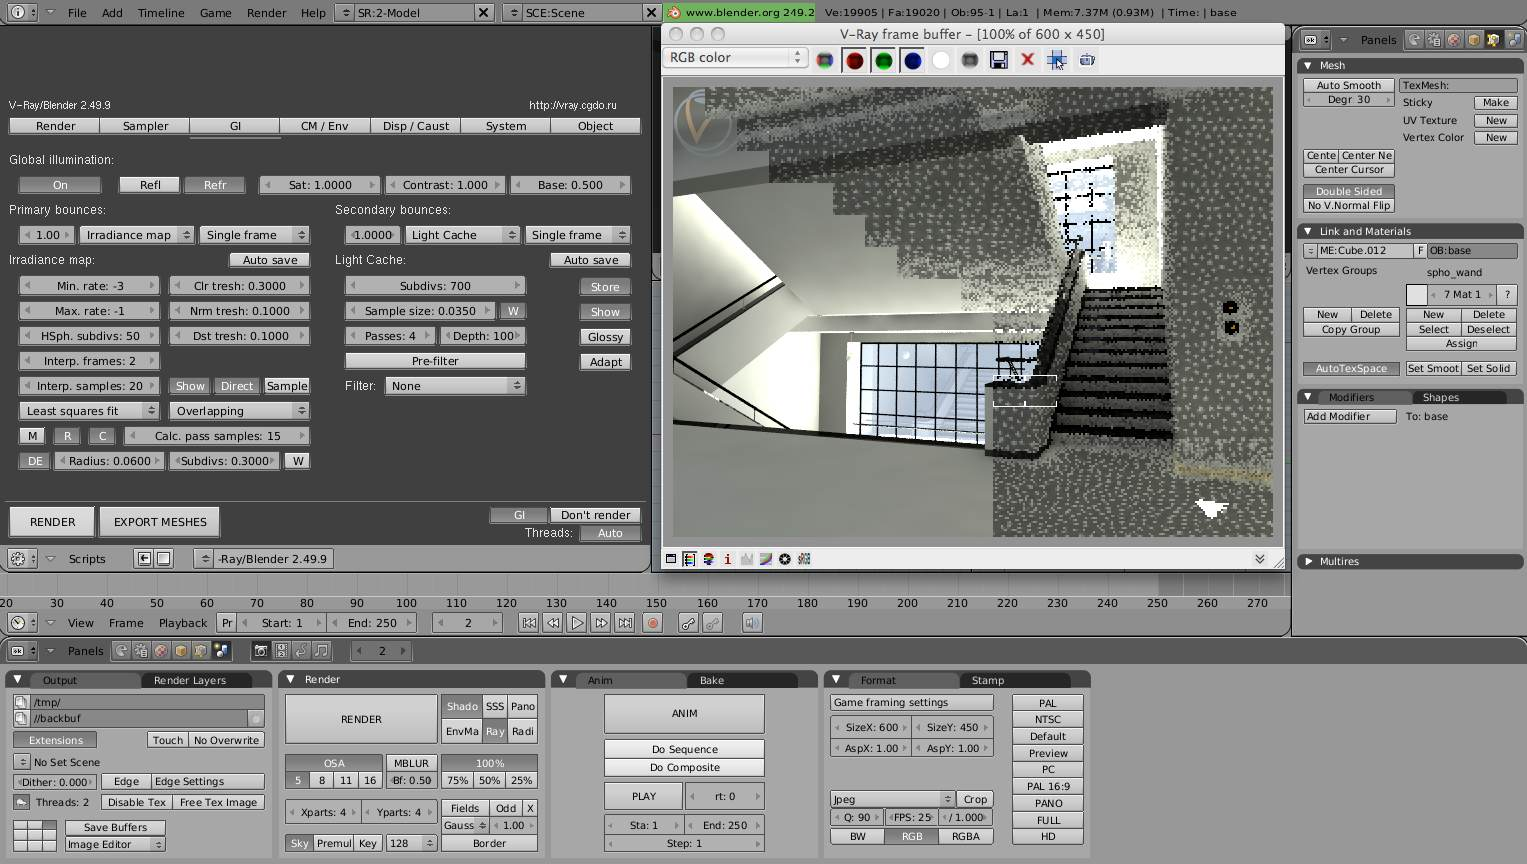 vray standalone 2 0 download torrent - Sarah Smith